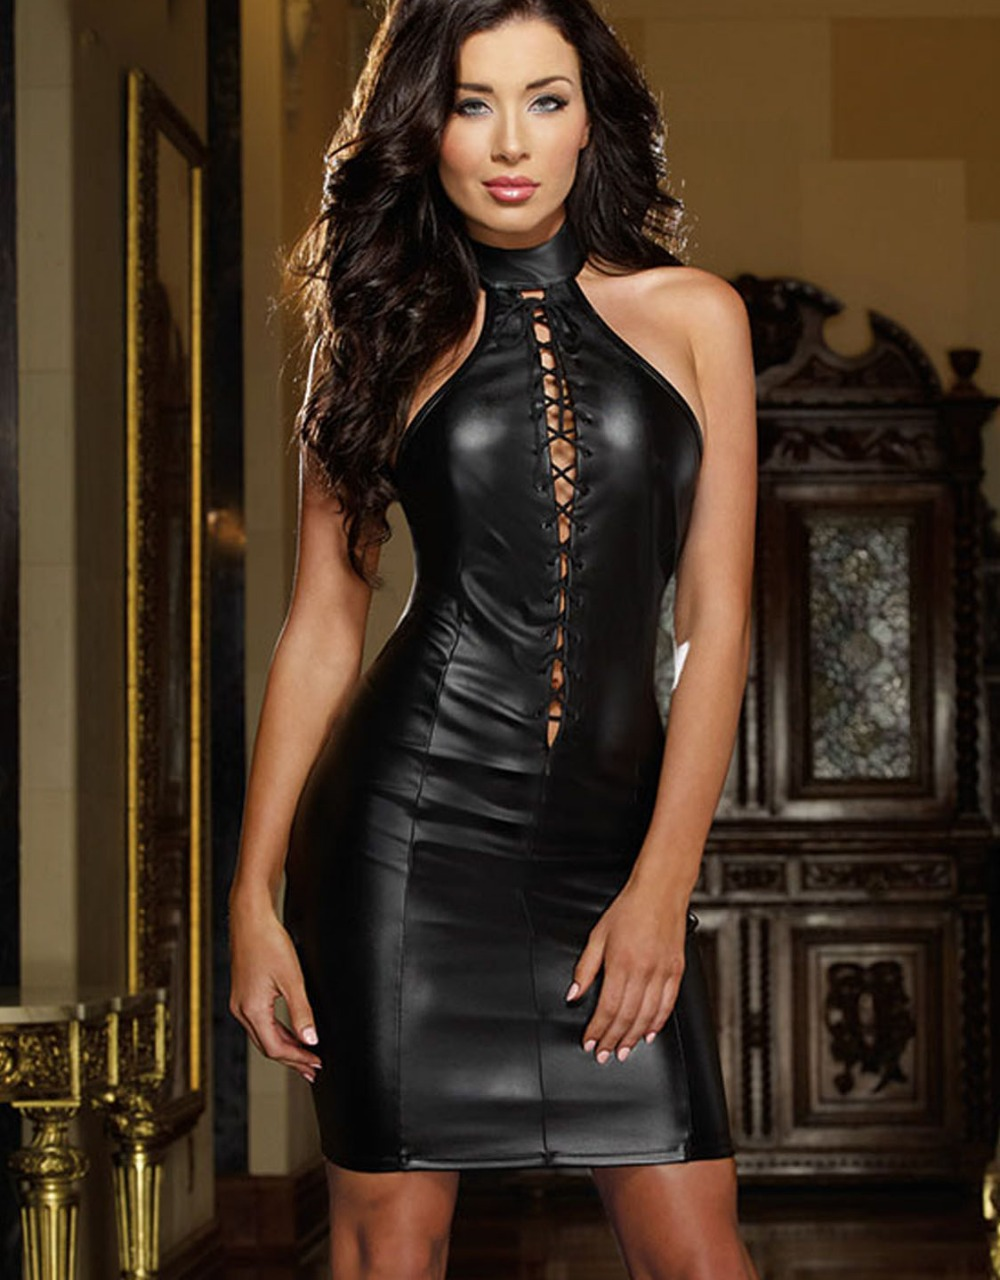 Clothes Erotic Hot Leather Sensual Sexy Tight Womens 50